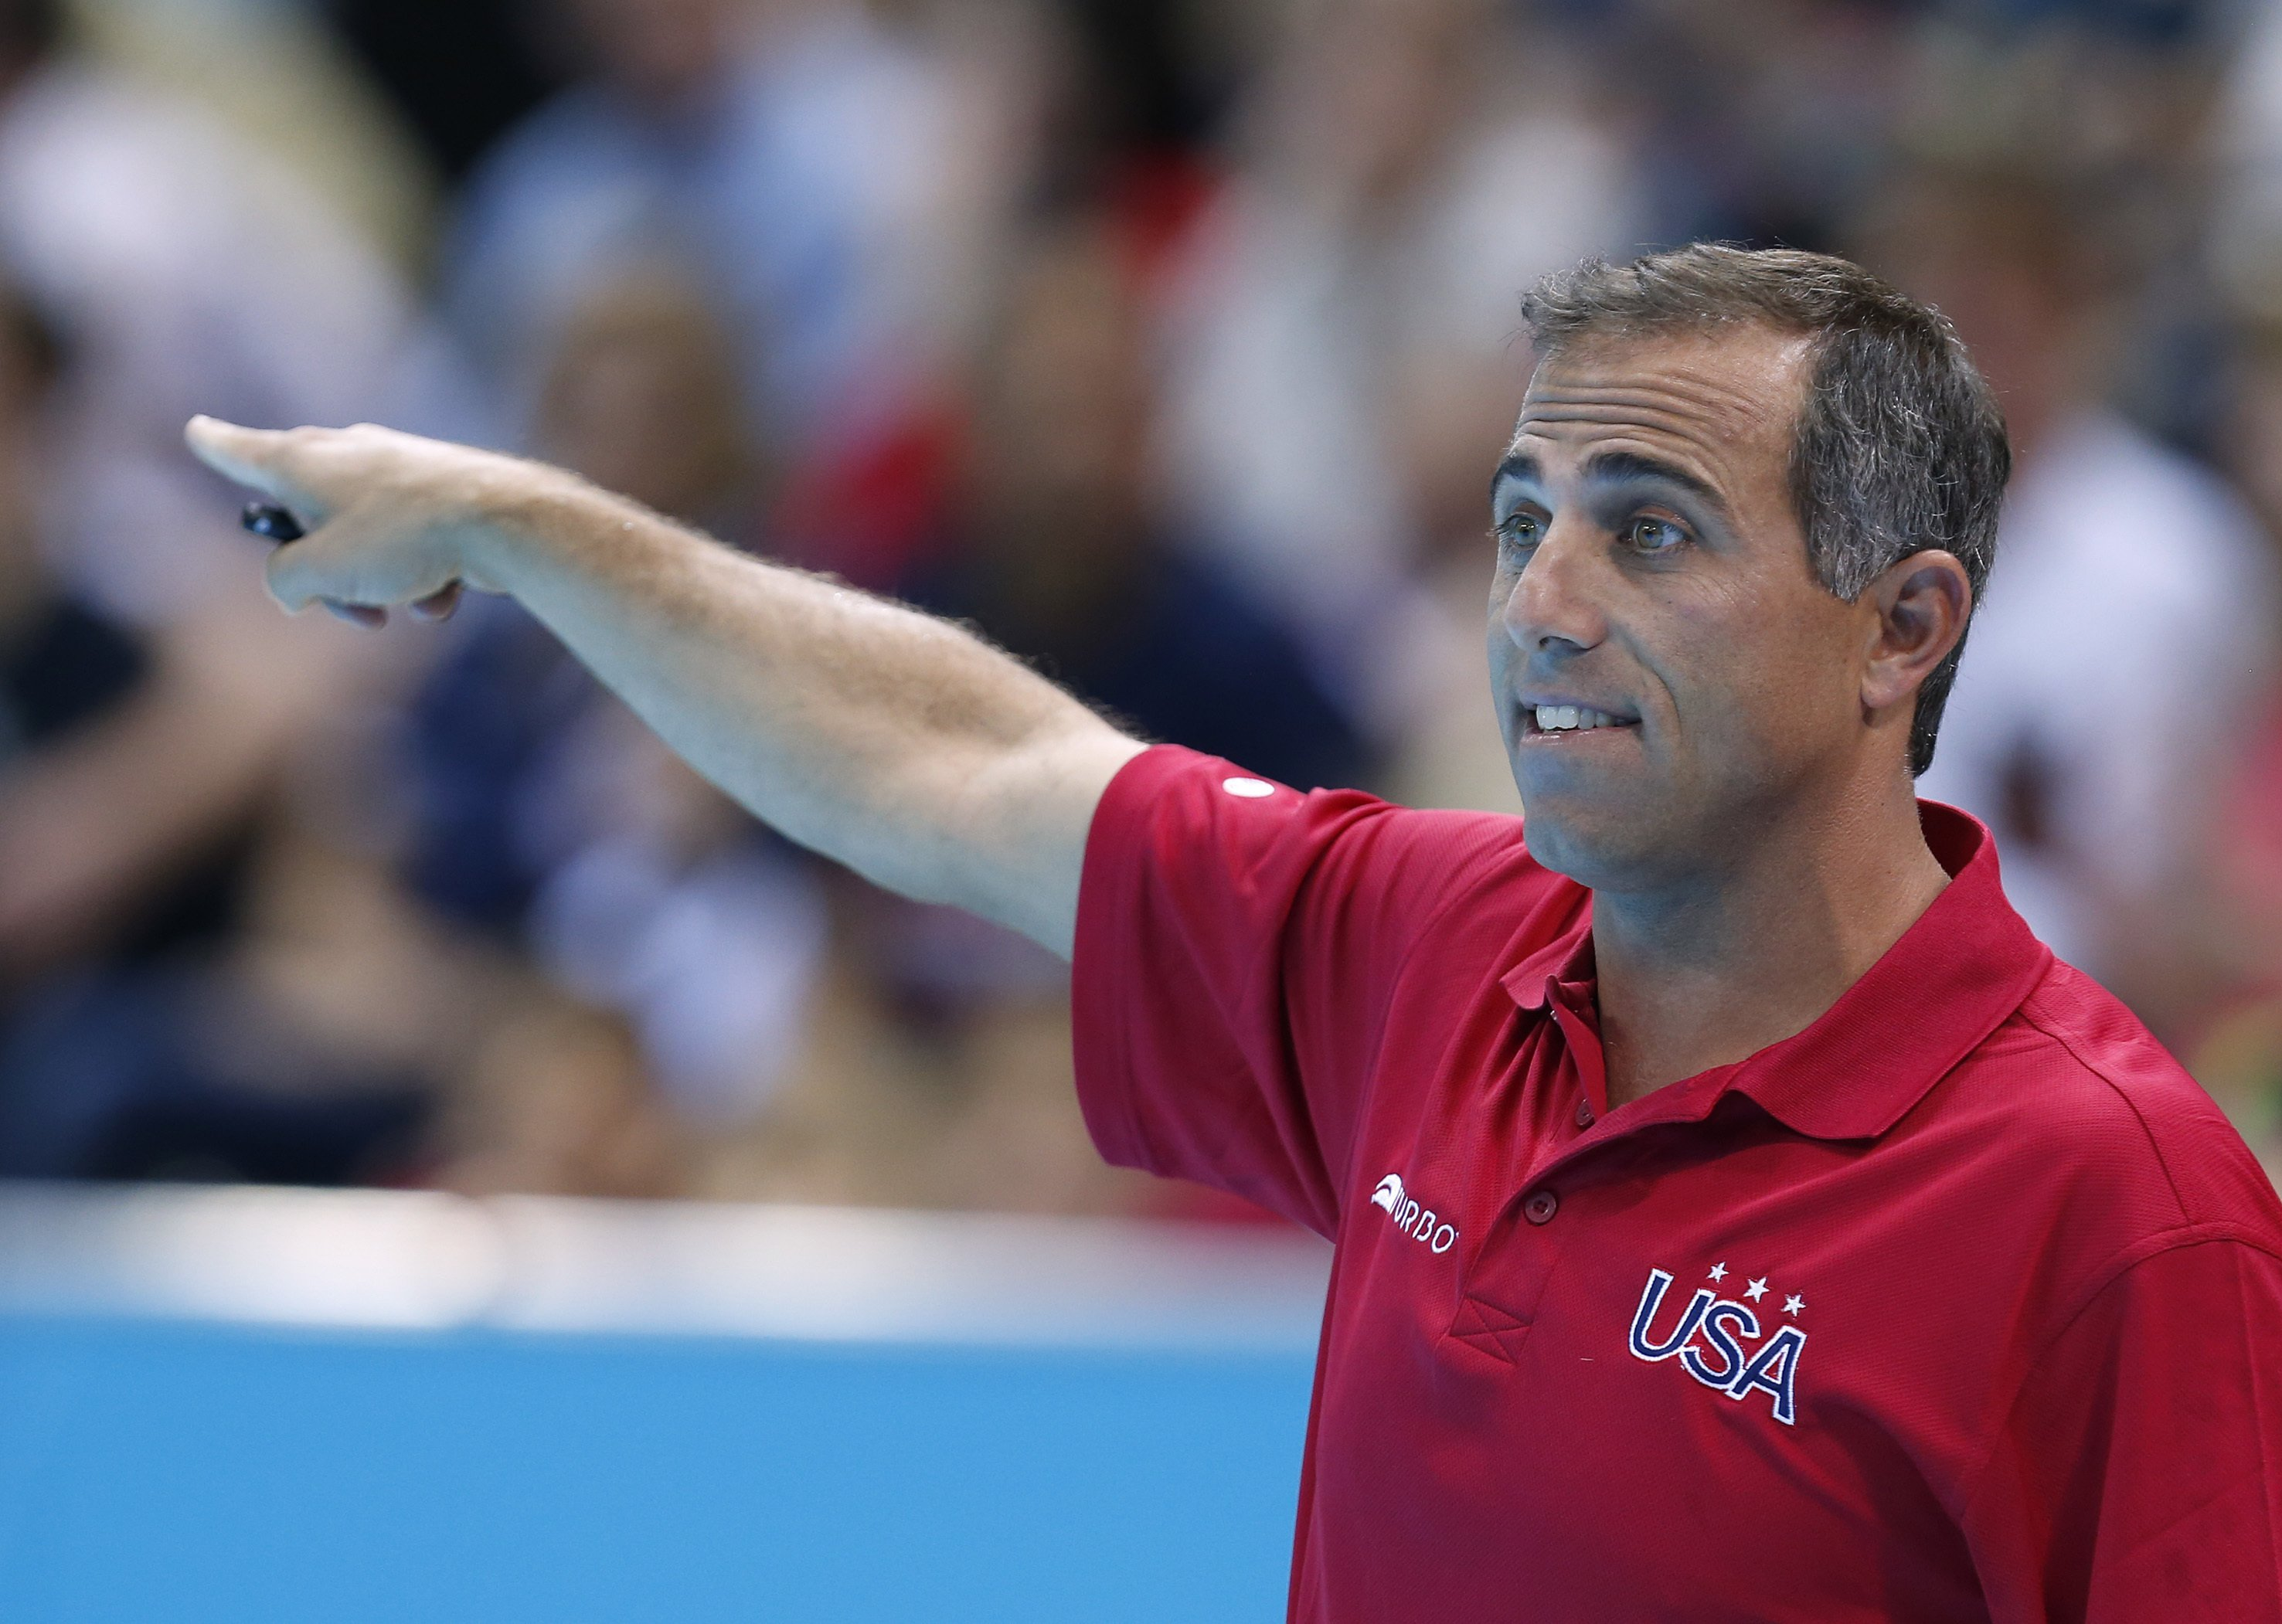 US women's water polo coach leaves team after brother dies